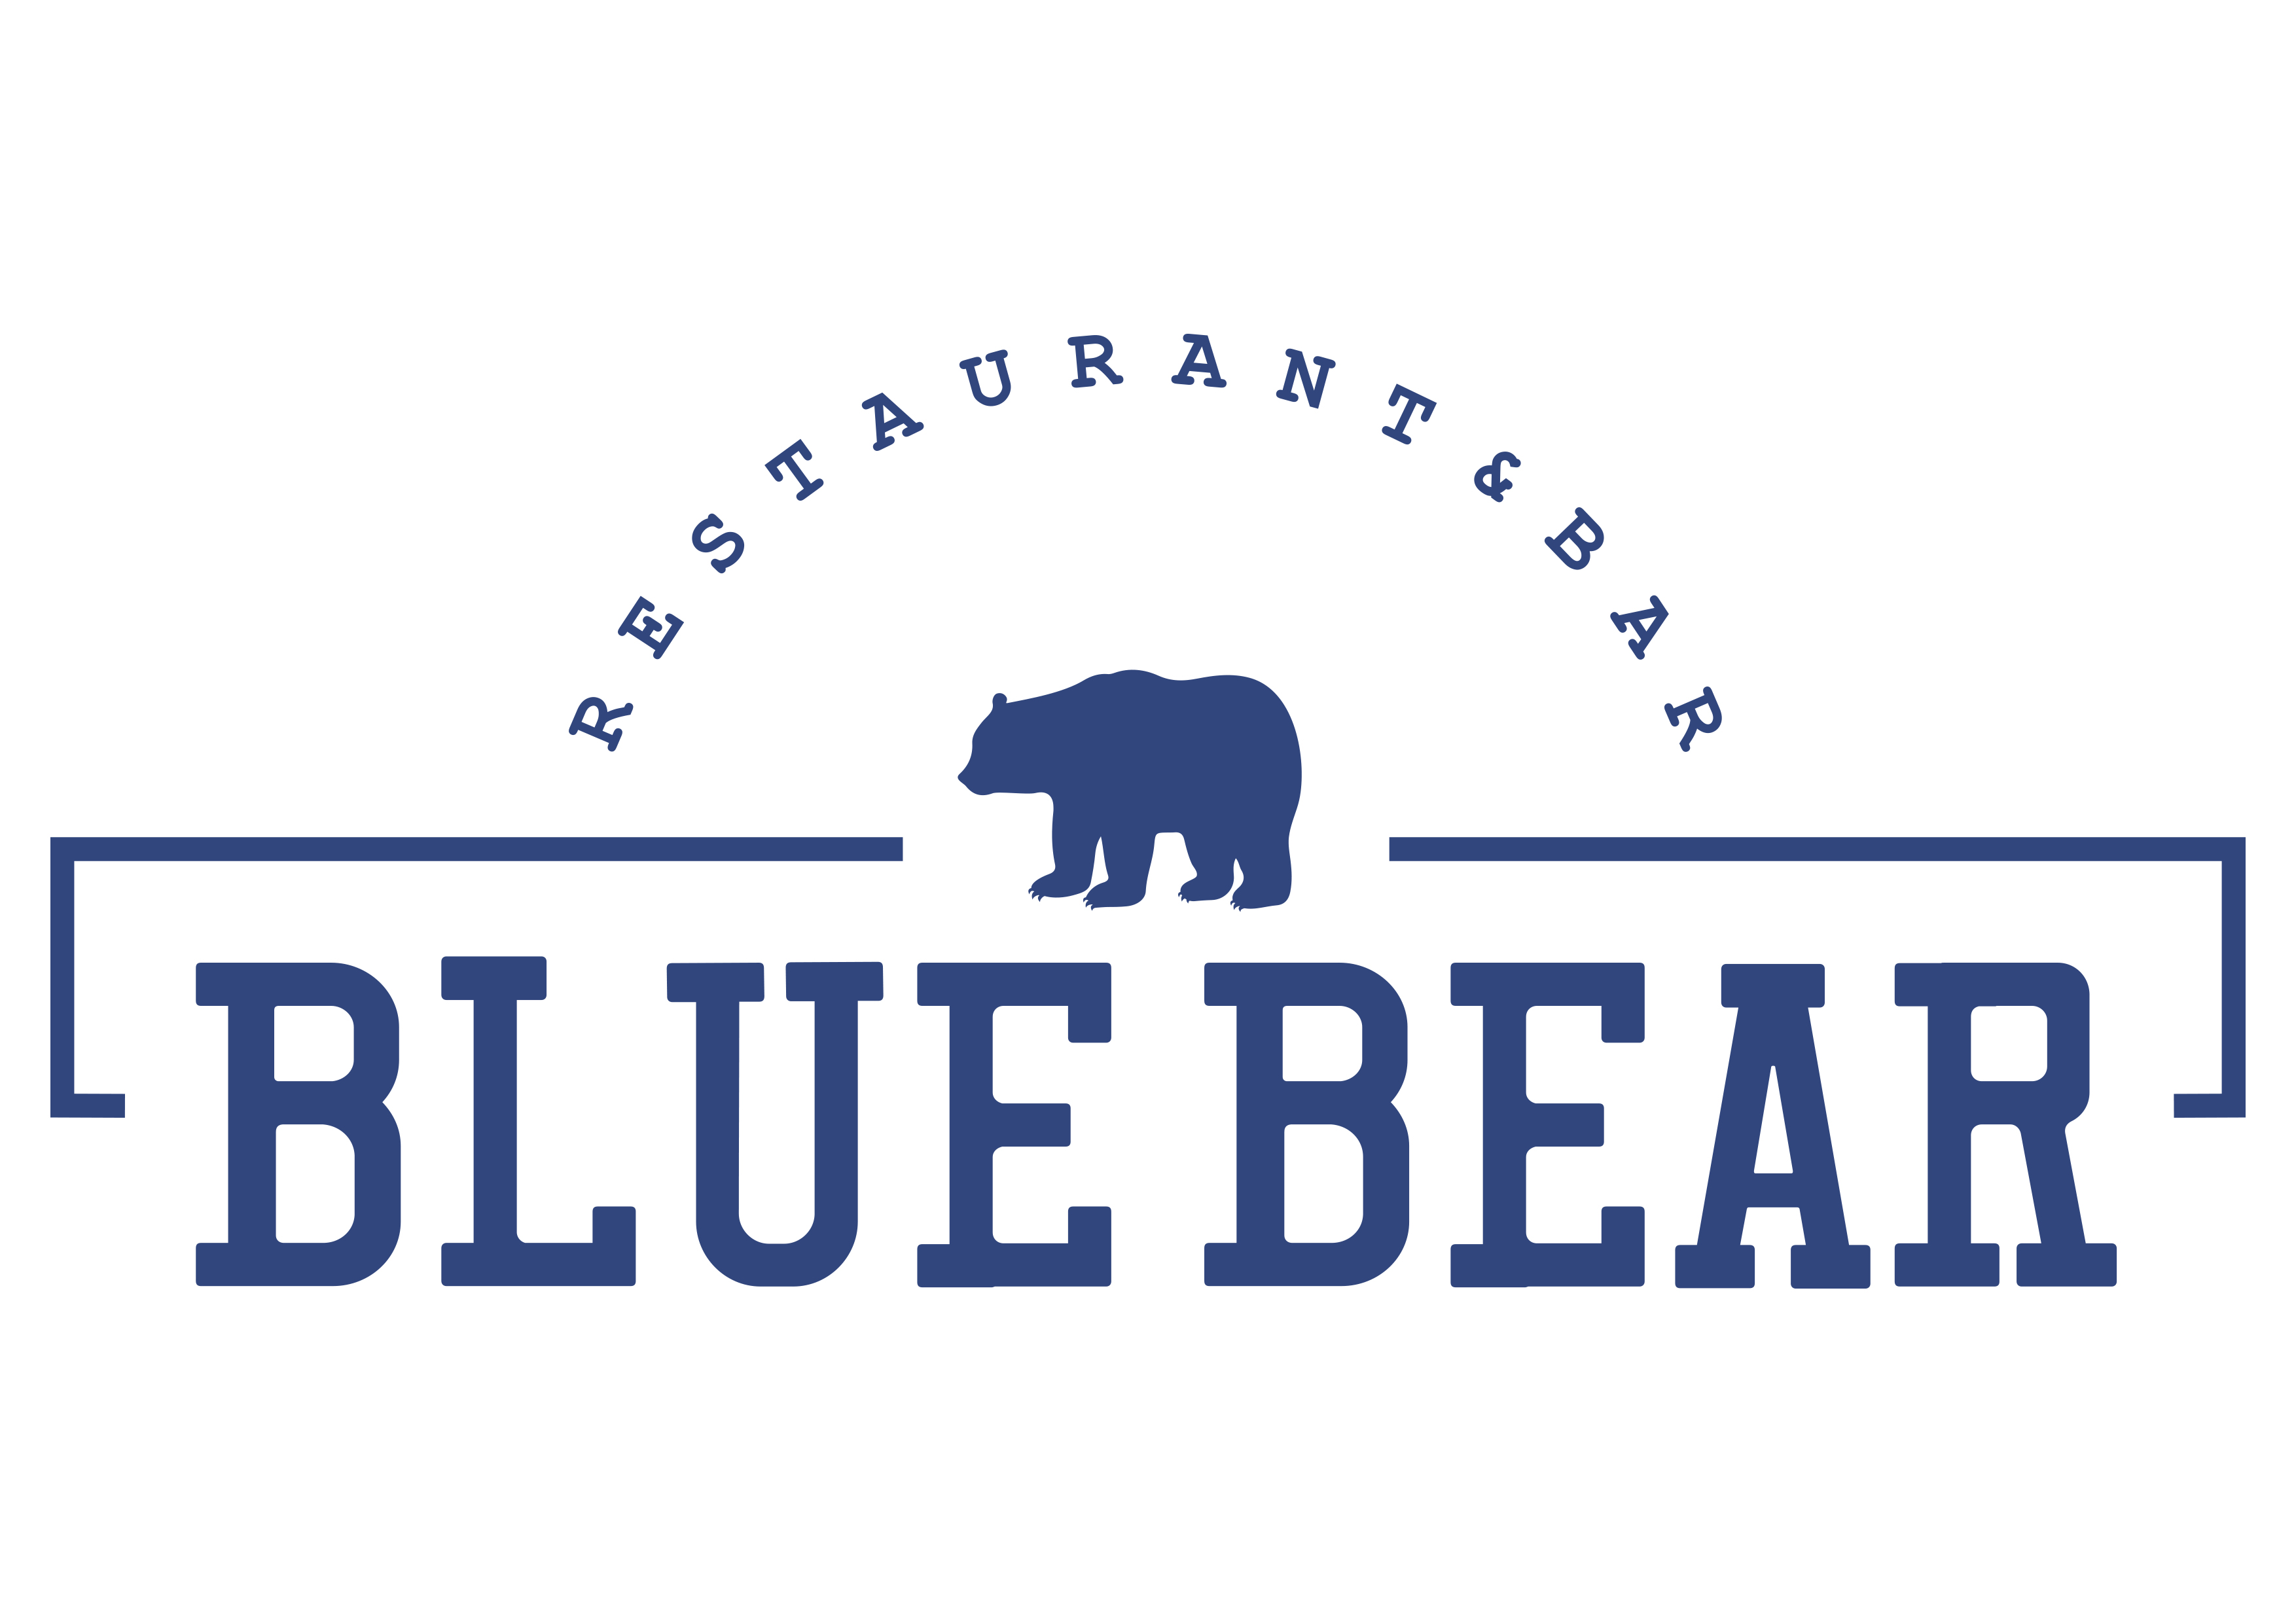 Blue Bear Restaurant & Bar